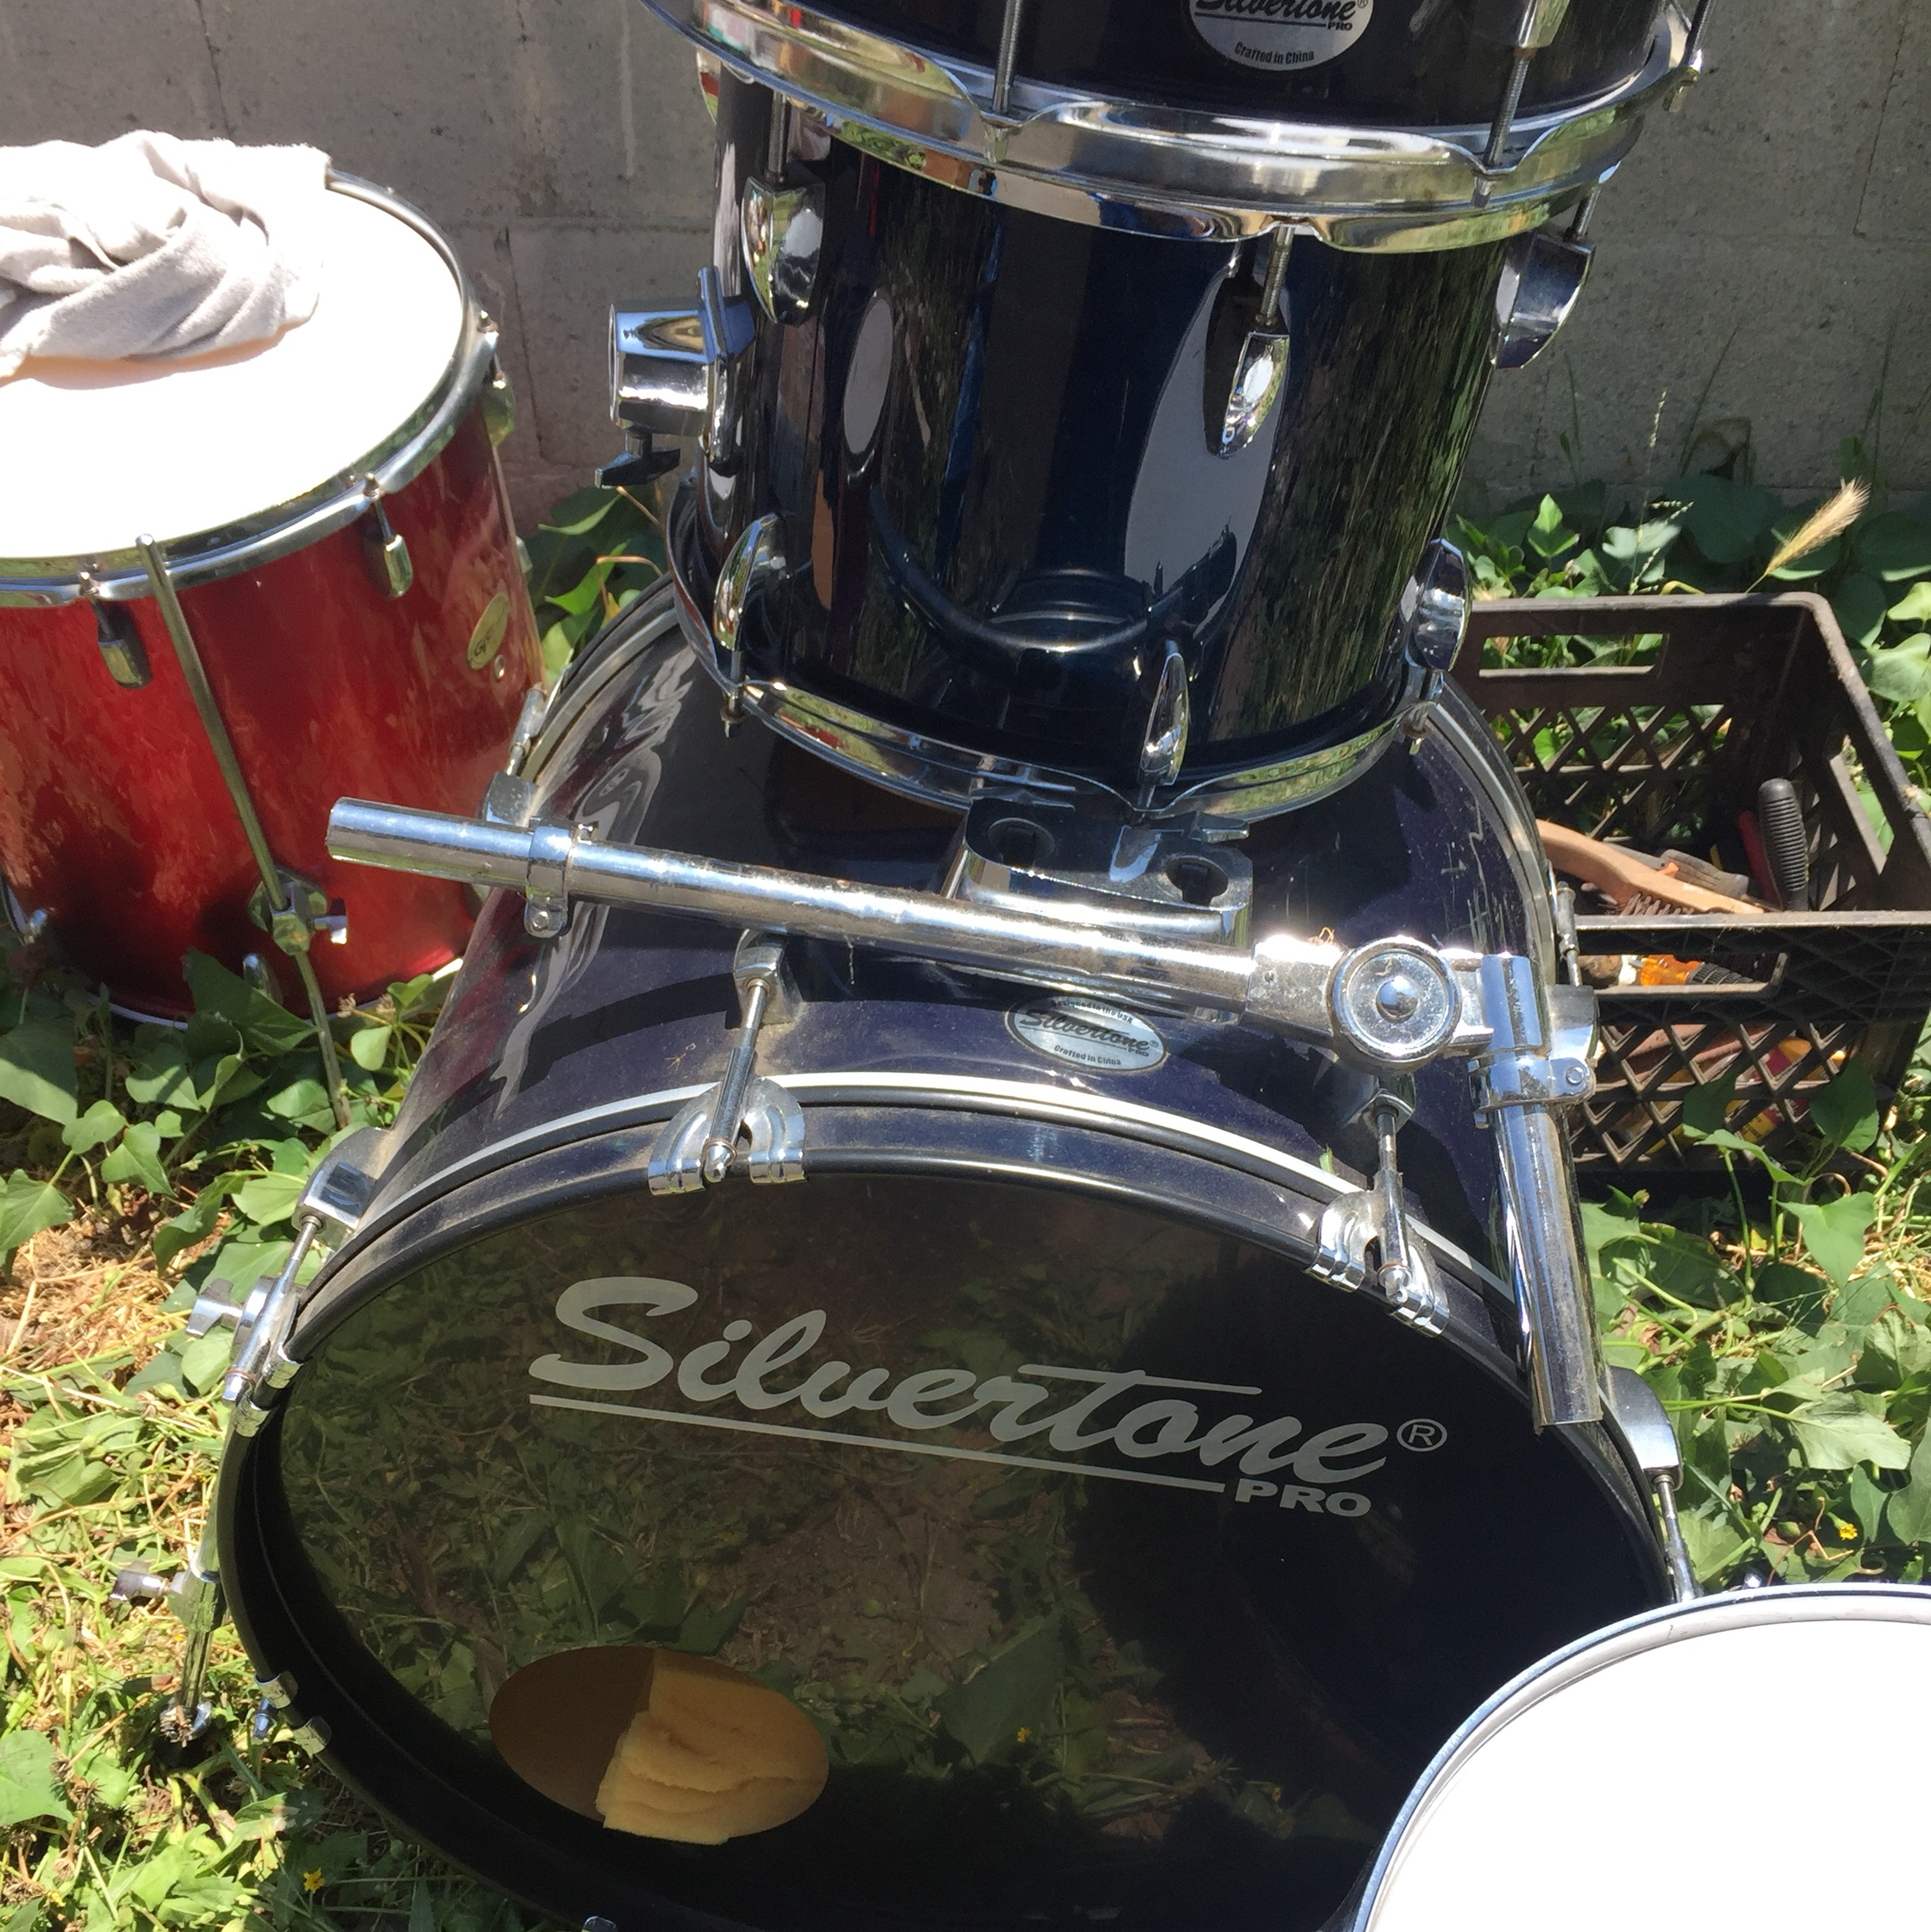 Silvertone drums  12 inch snare, 13 inch toms, 16    - Depop